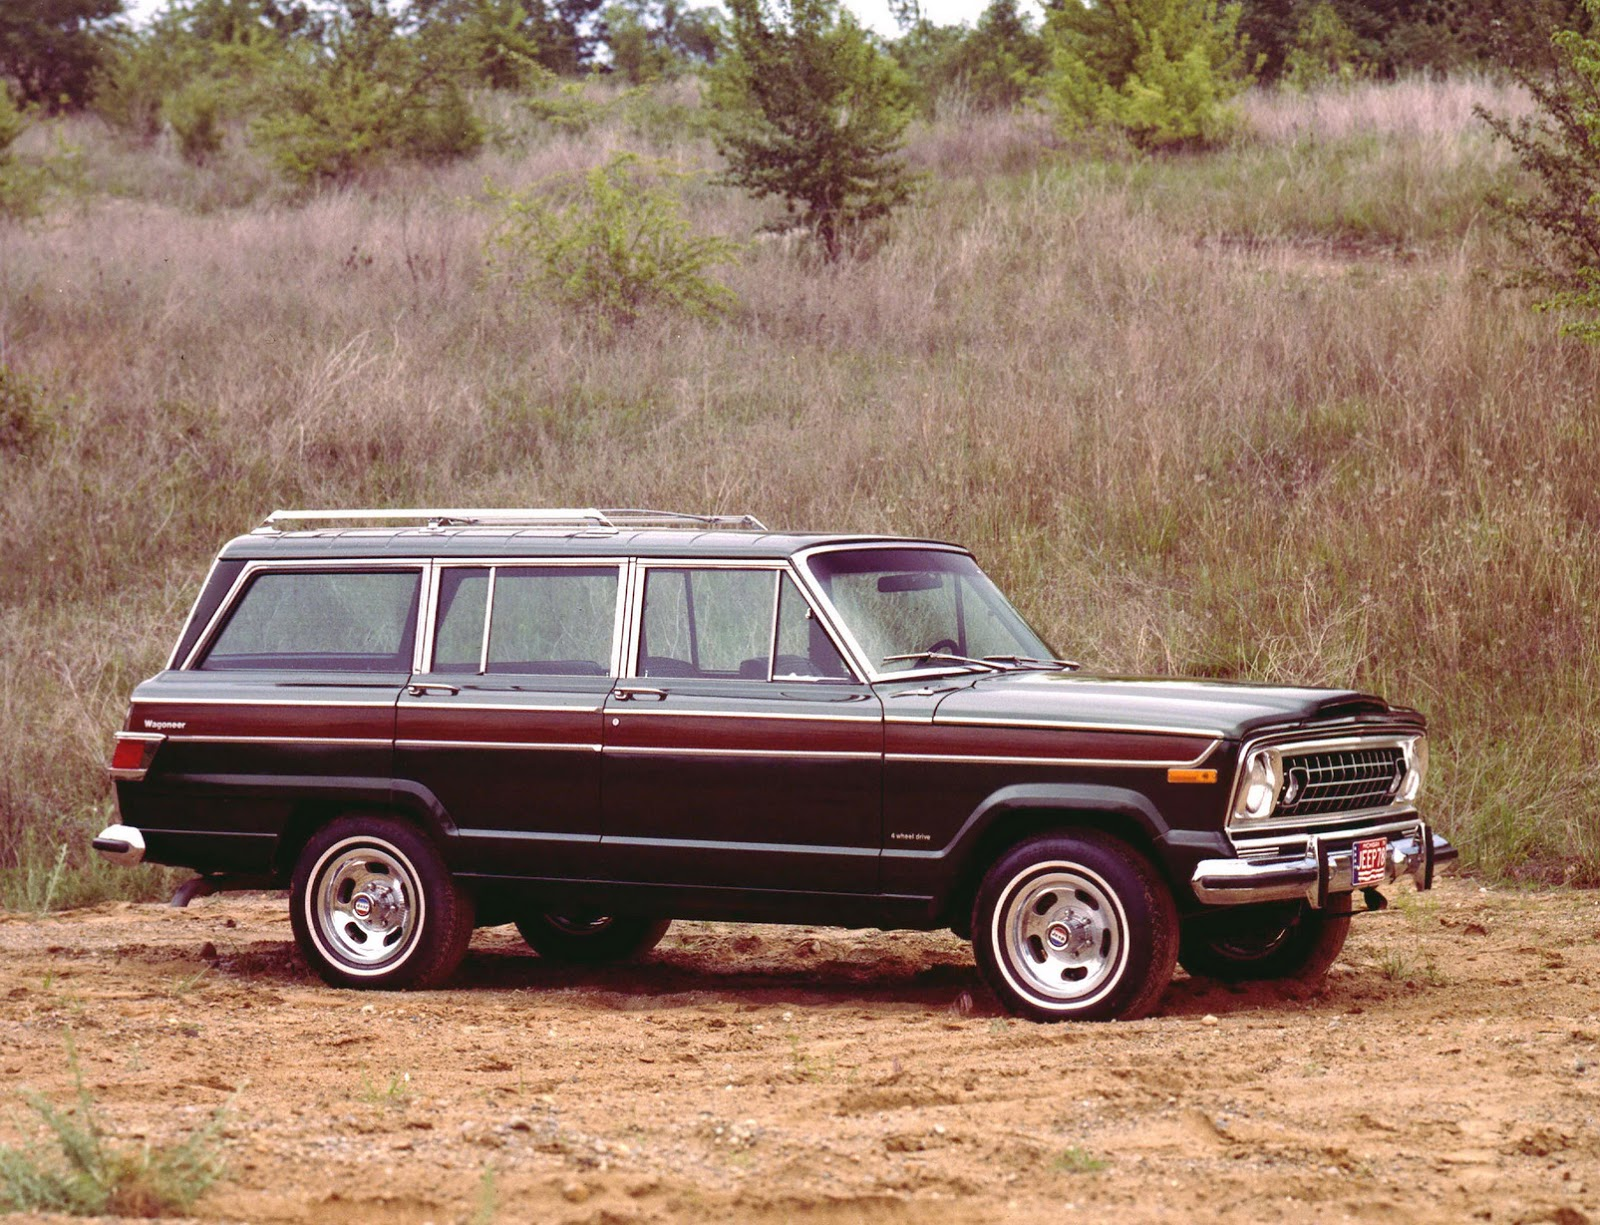 2018 jeep grand wagoneer could be priced as high as 140k carscoops. Black Bedroom Furniture Sets. Home Design Ideas